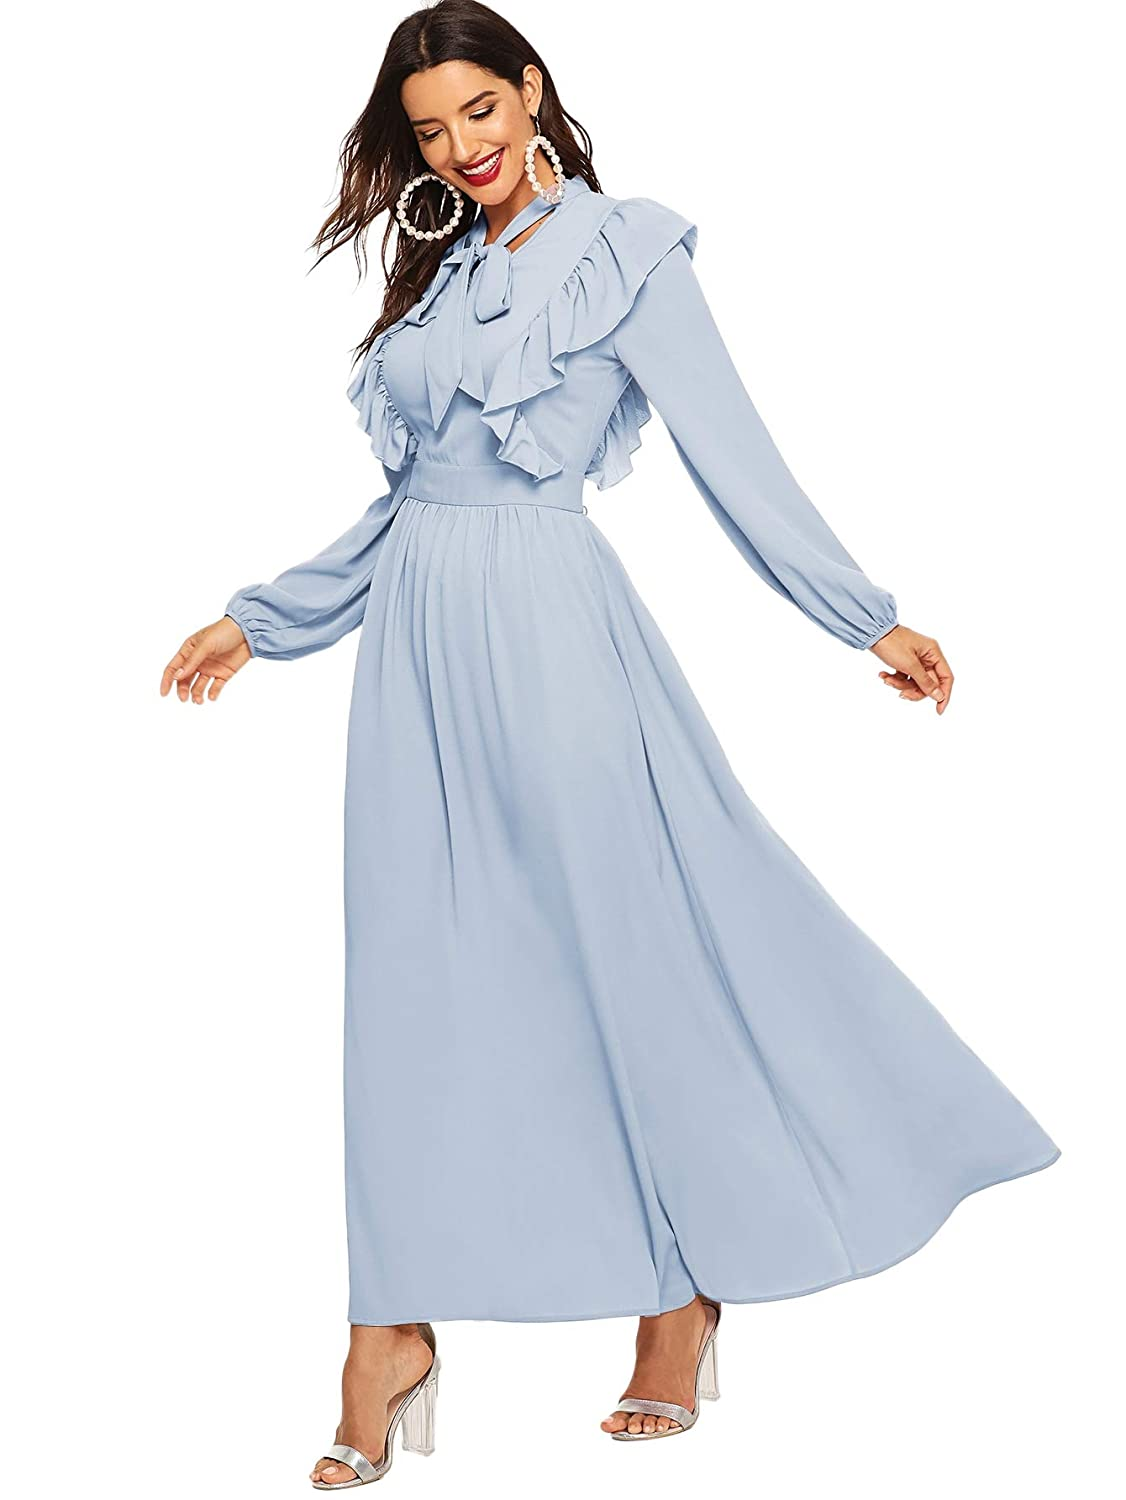 1930s Day Dresses, Afternoon Dresses History Verdusa Womens Tie Neck Ruffle Trim Long Sleeve Flared Flowy Maxi Dress $36.99 AT vintagedancer.com